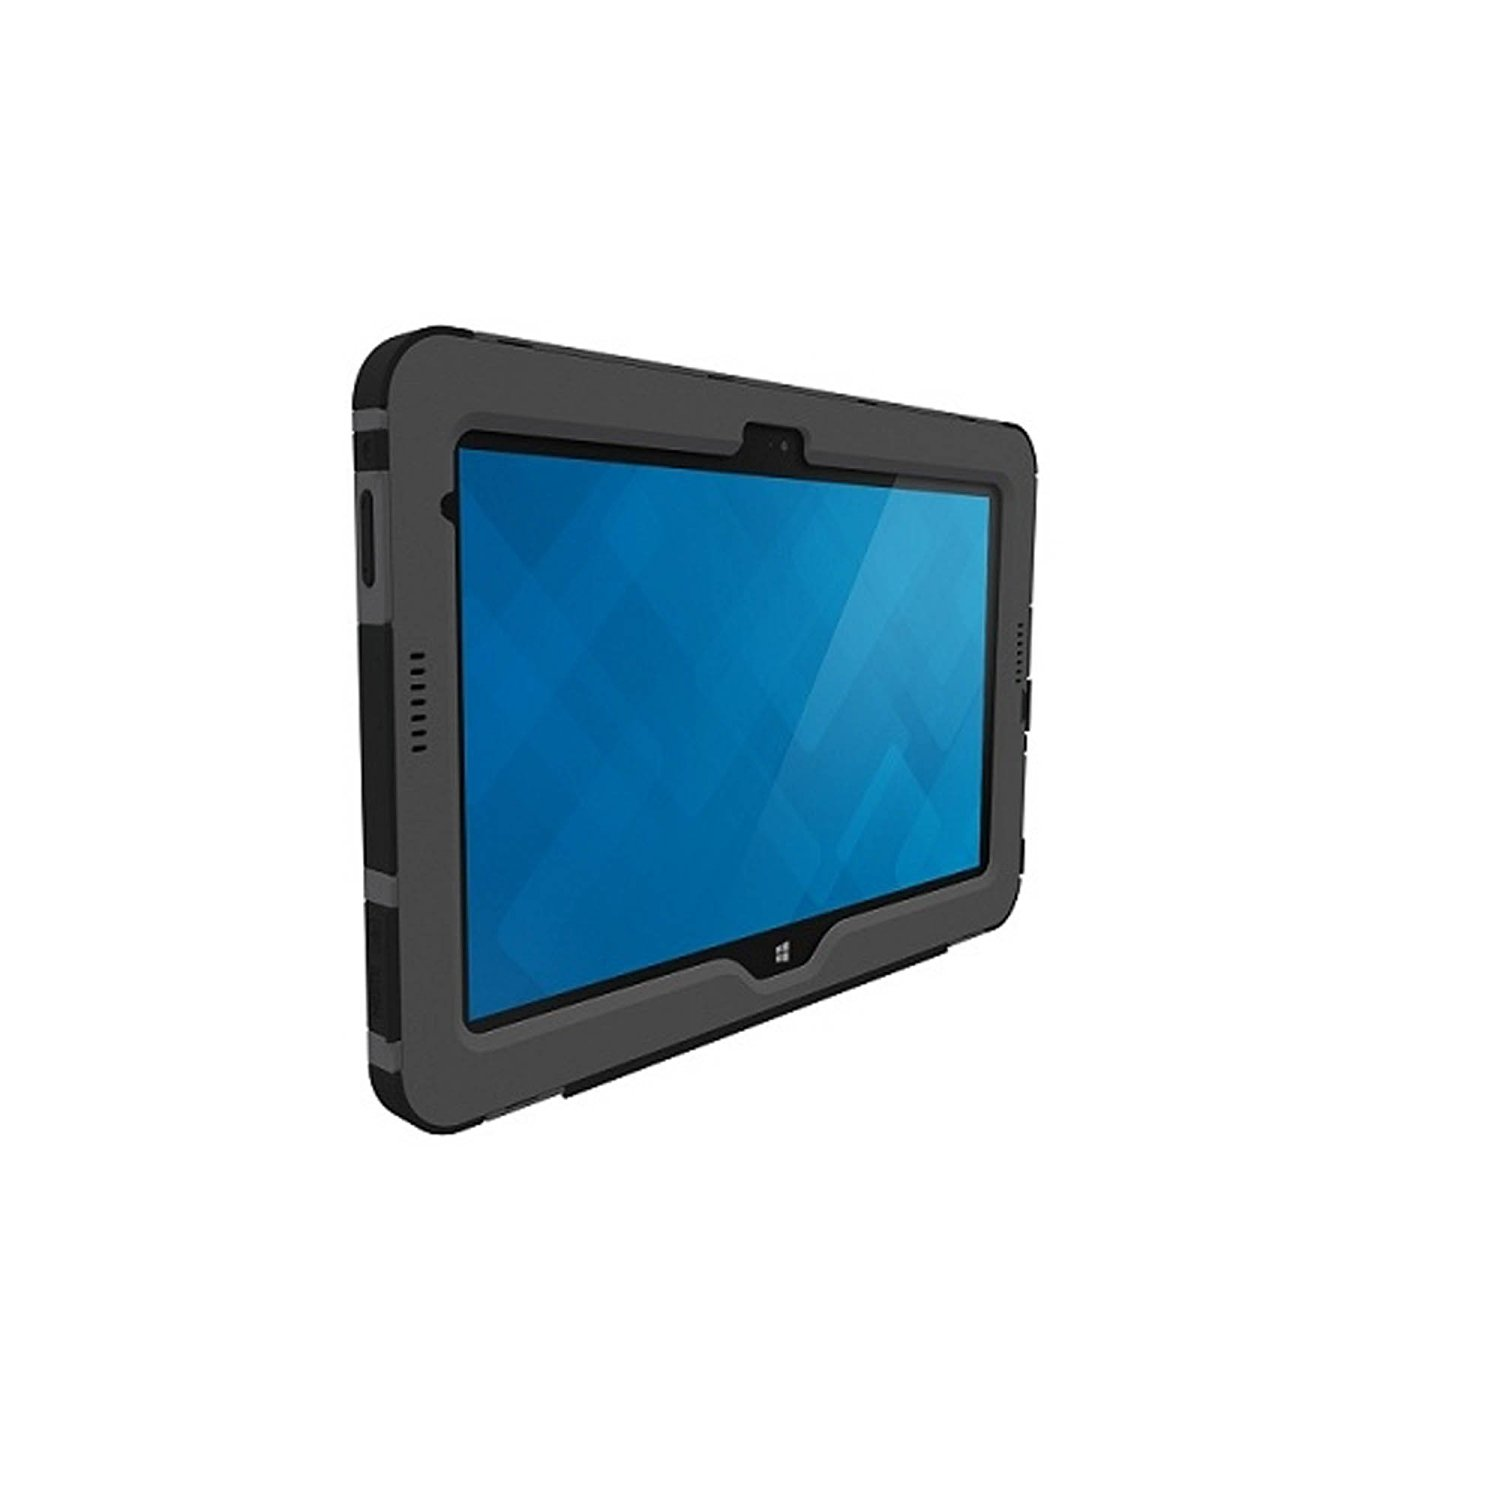 tablet services rug ltd new latitude rugged dell products eca extreme